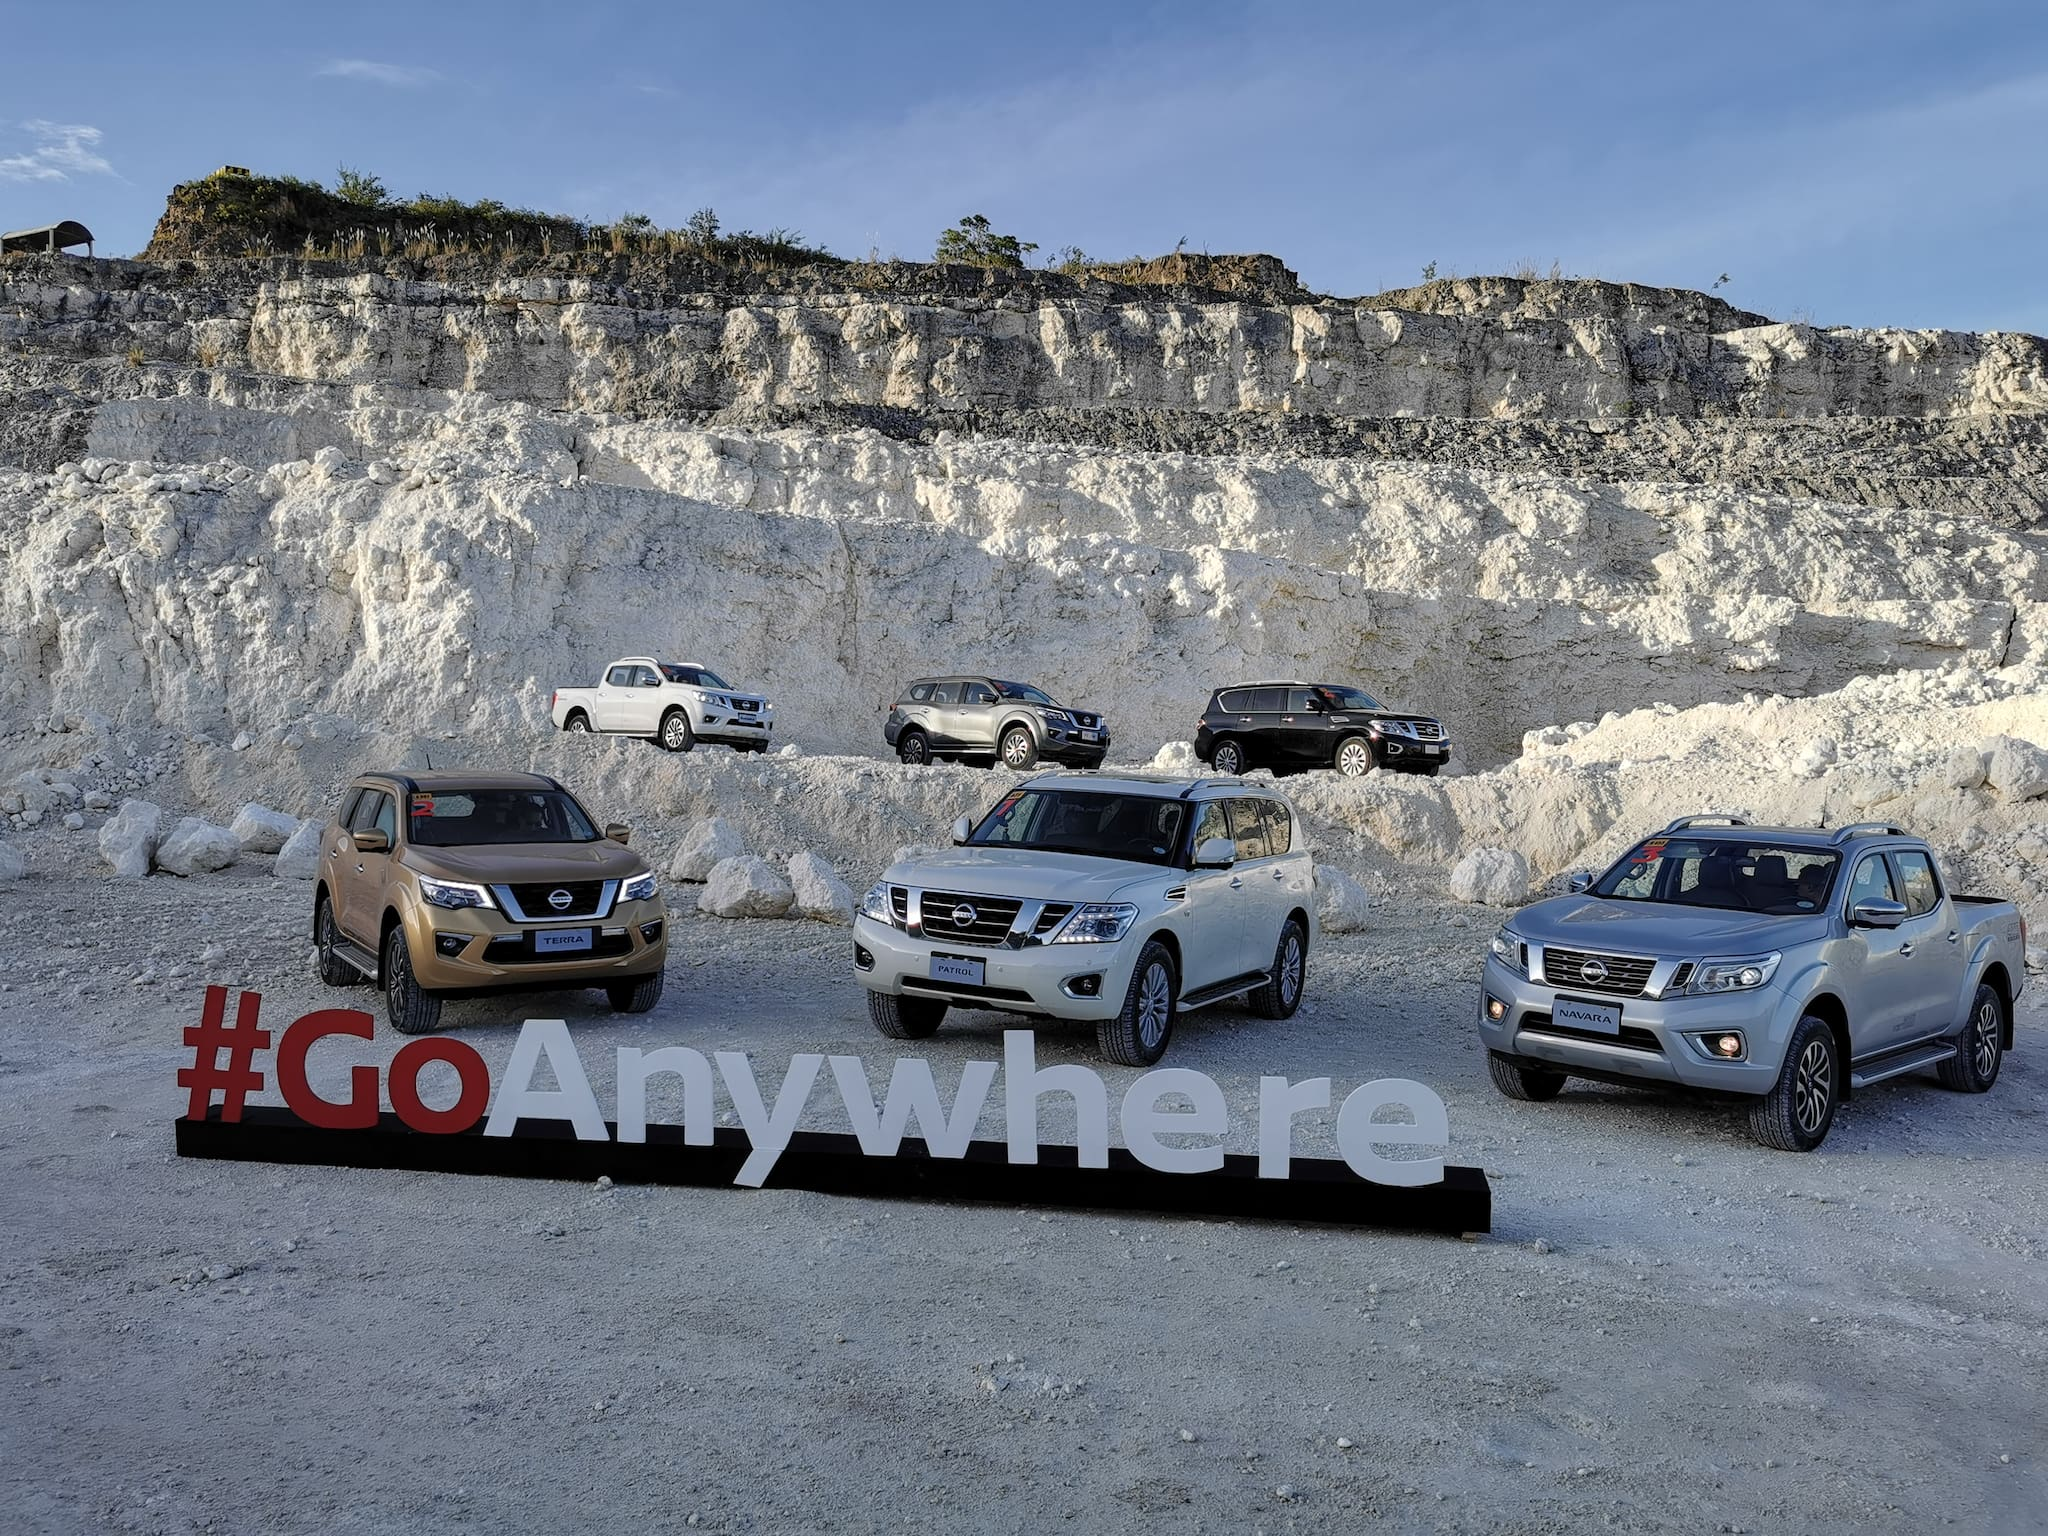 Magical, Mystical journey: Nissan 'Go Anywhere' Drive to Siquijor